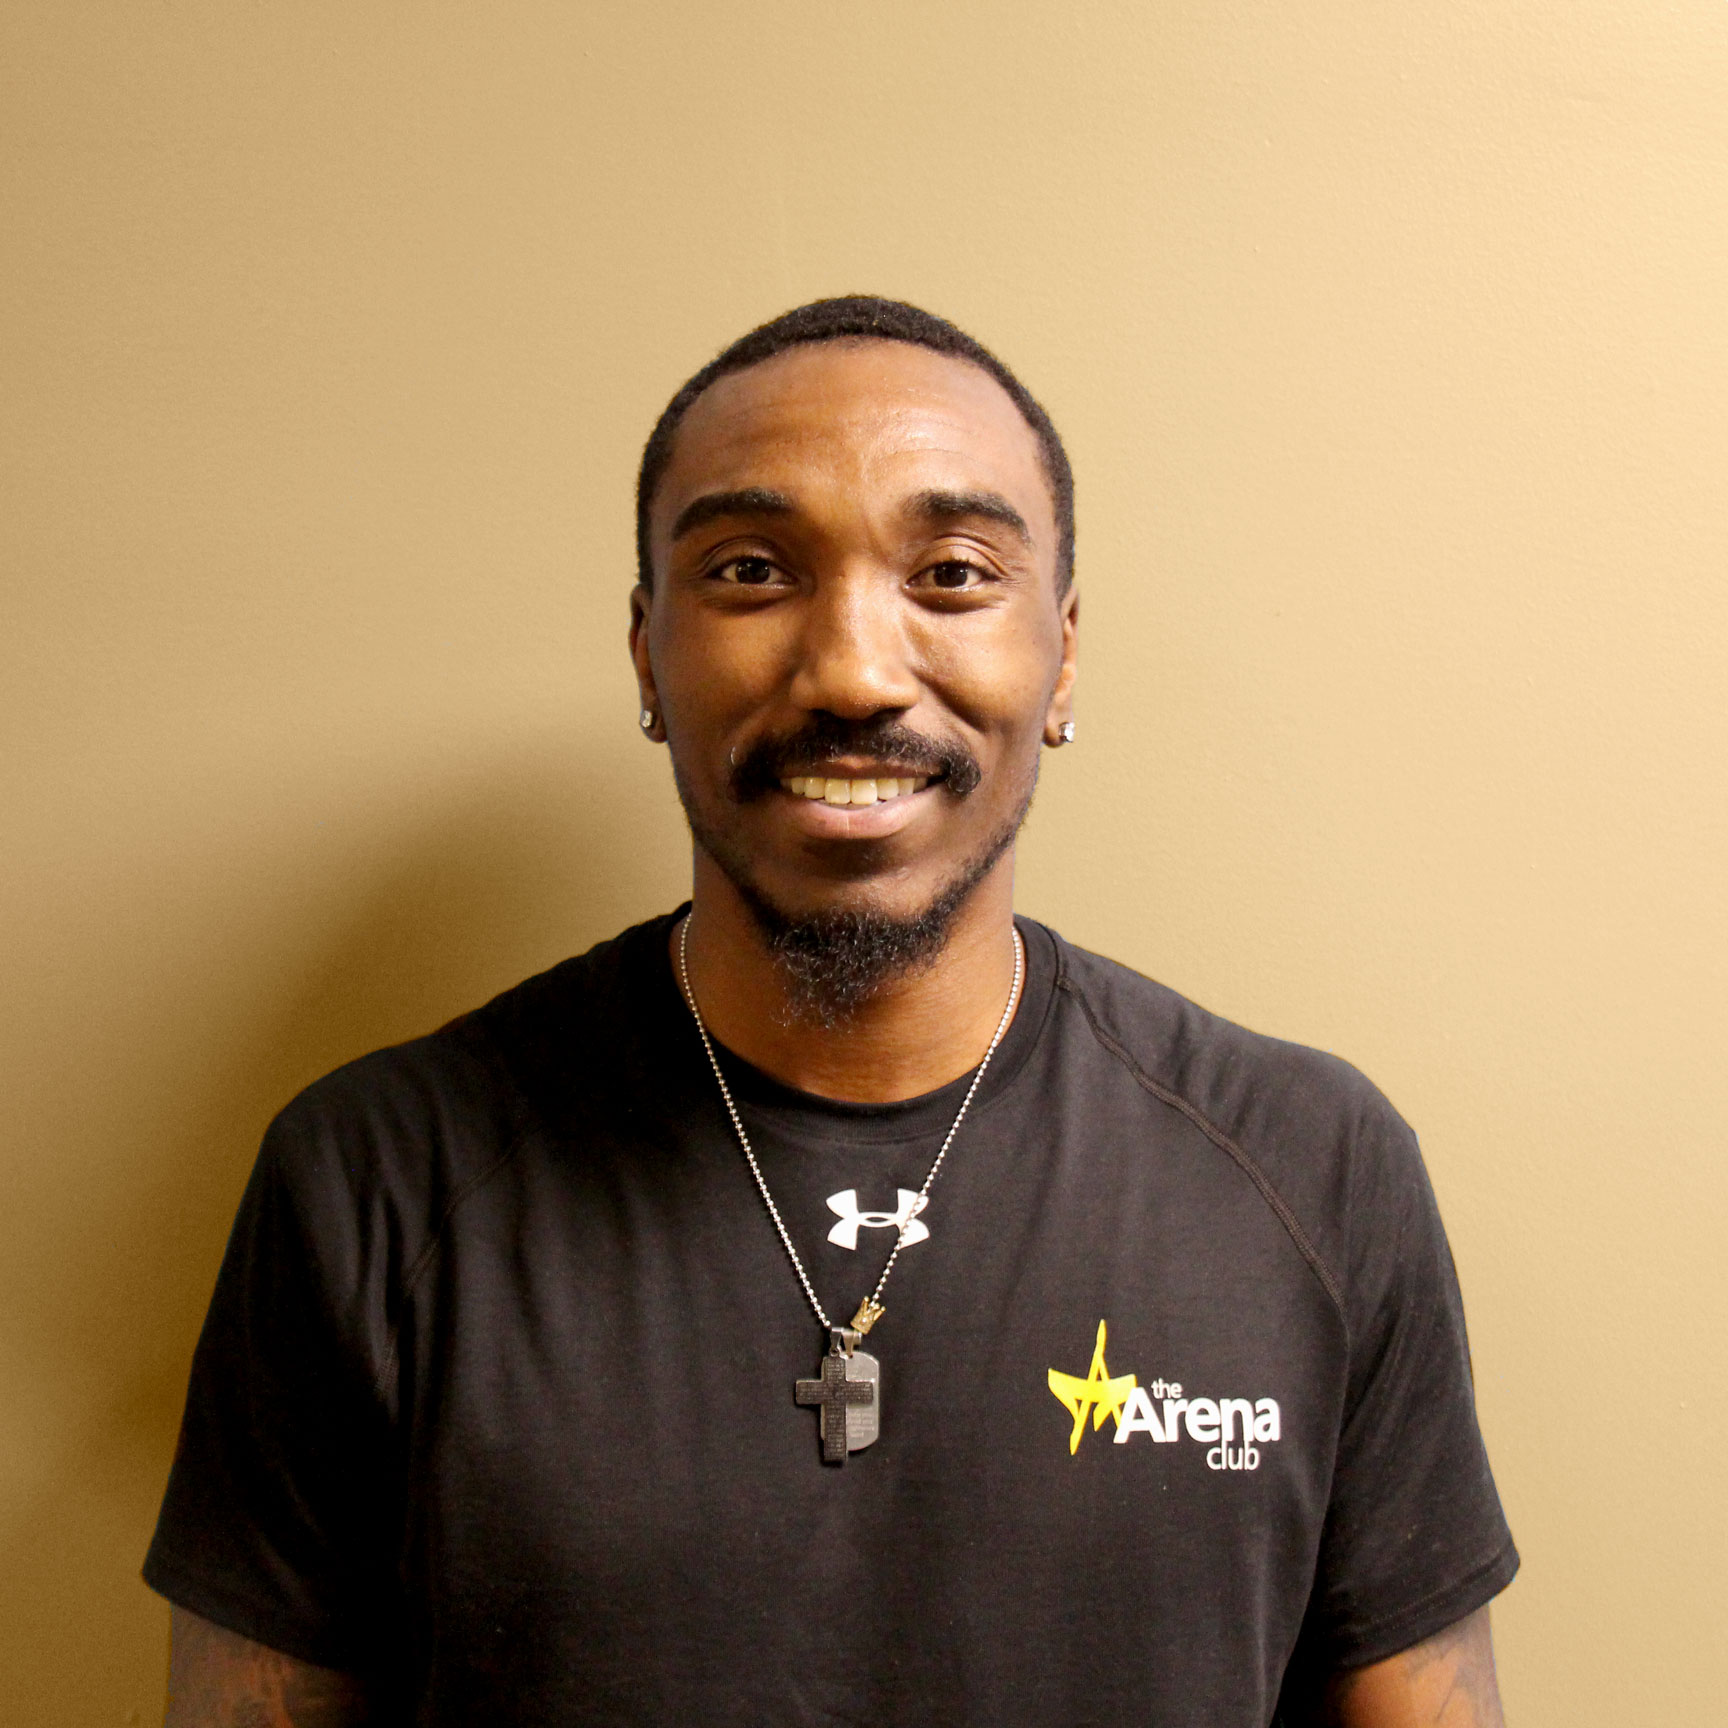 Isaiah Gills - Certified Personal Trainer & Sports Performance Coach